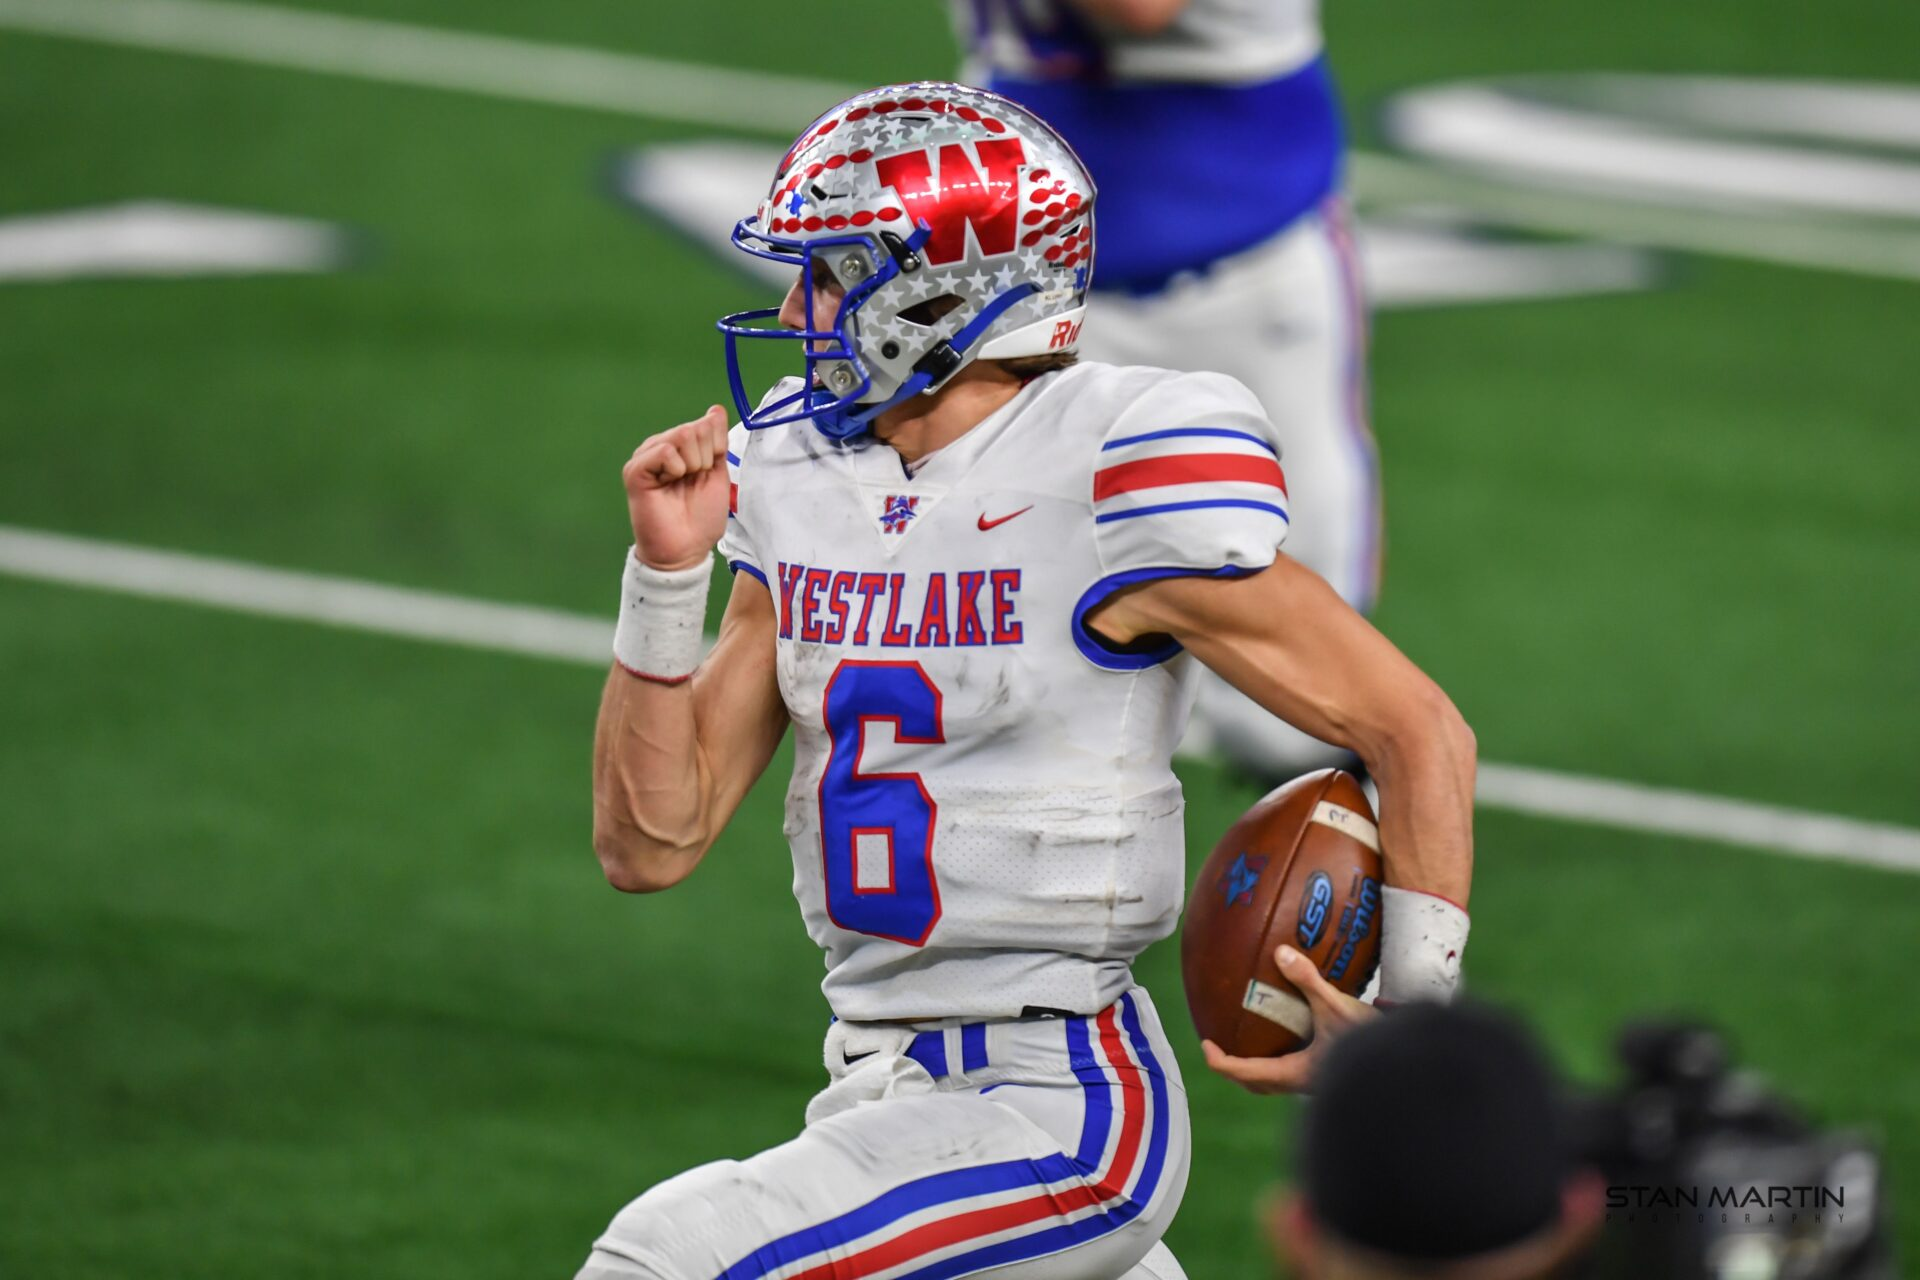 top HS football player in Texas